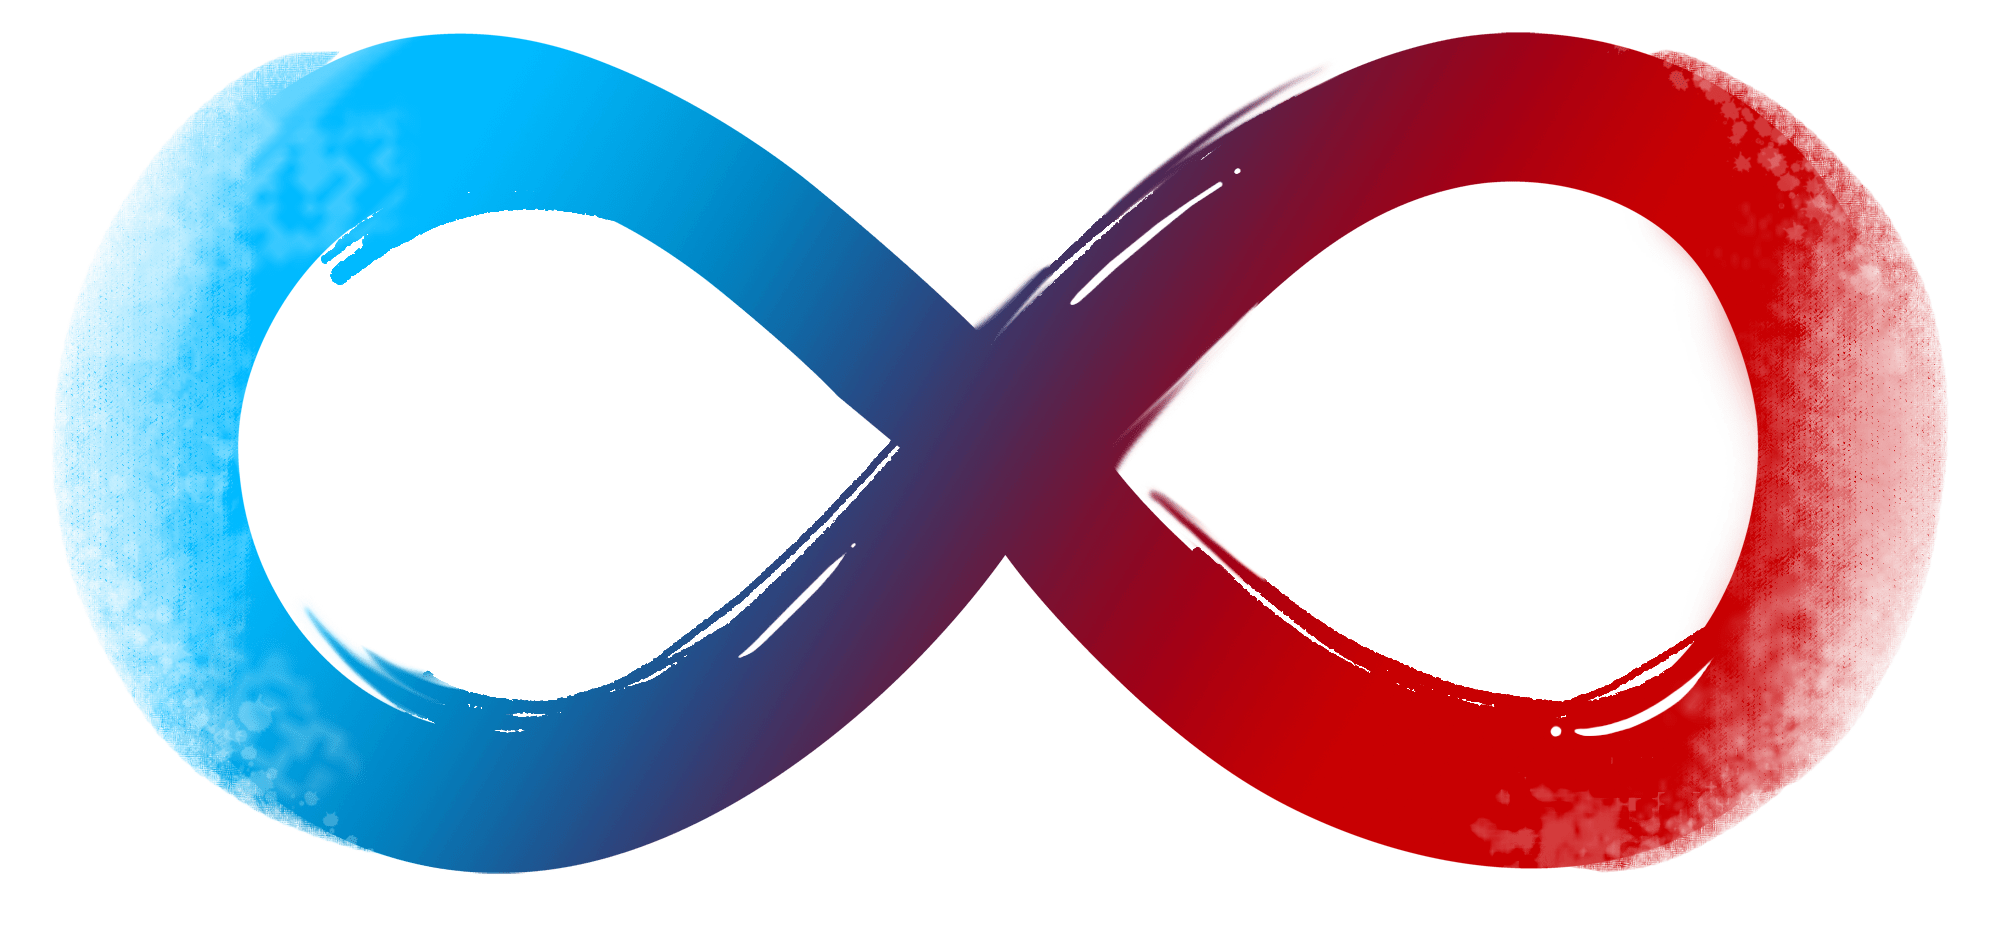 Infinity symbol PNG images free download.